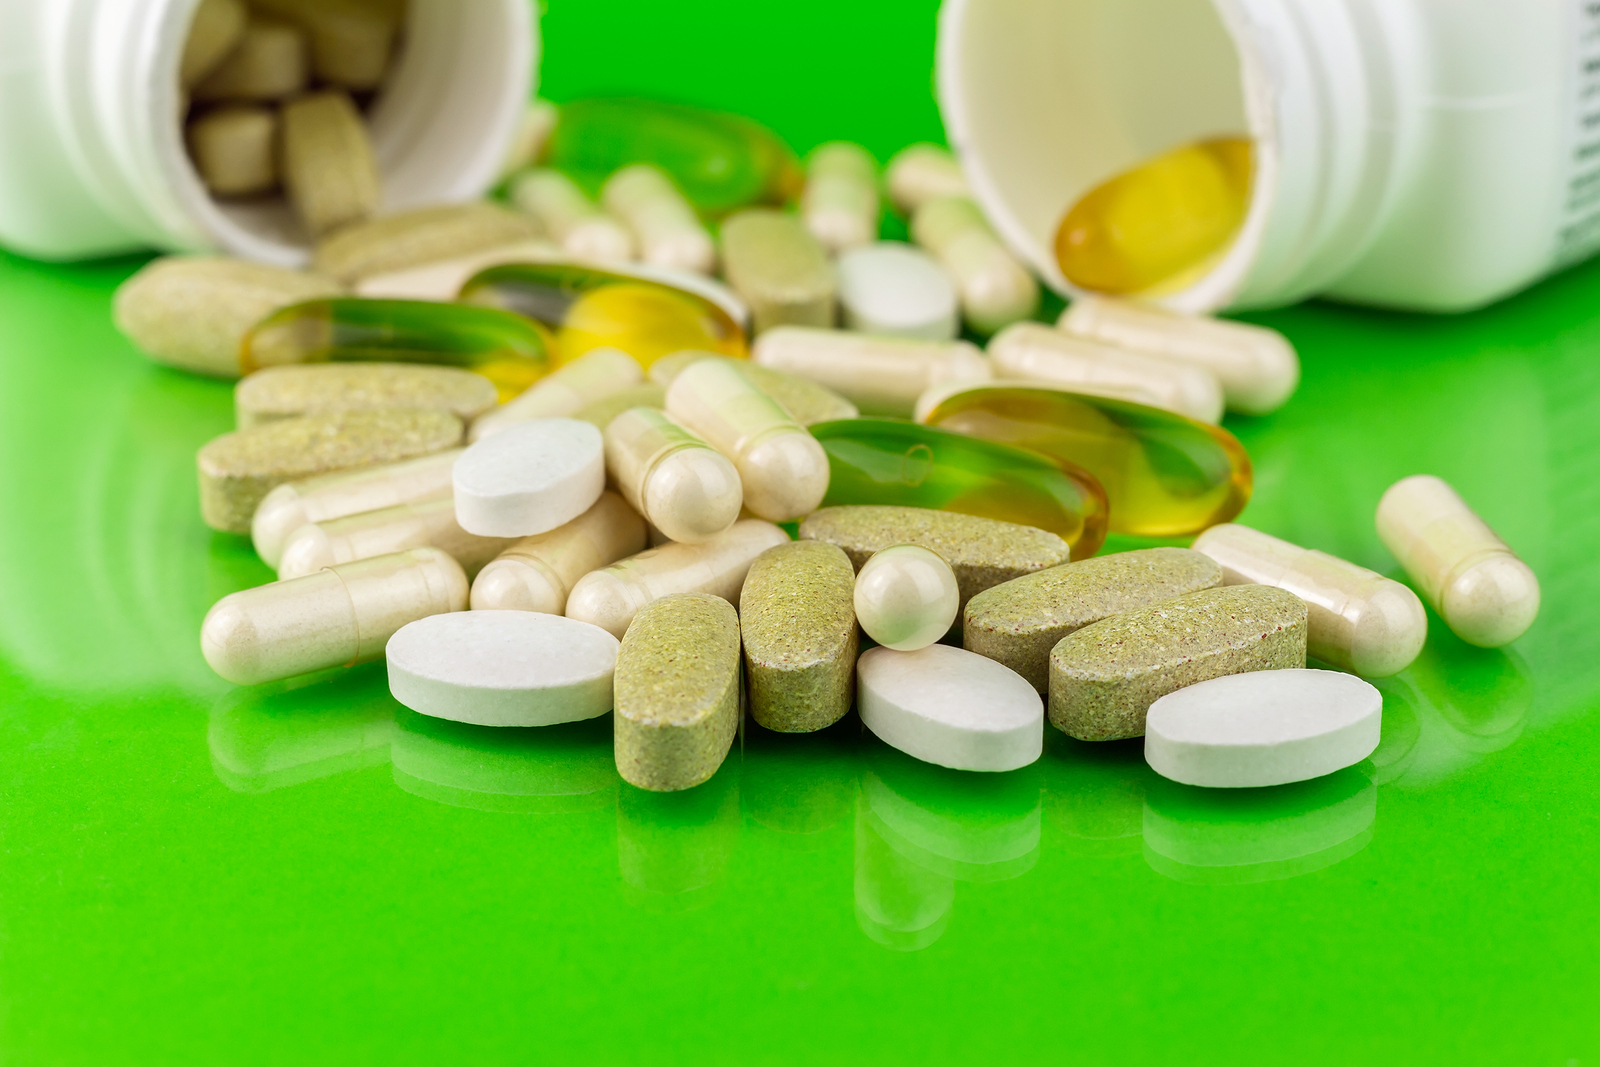 How to Choose a Multivitamin - an Expert's Guide